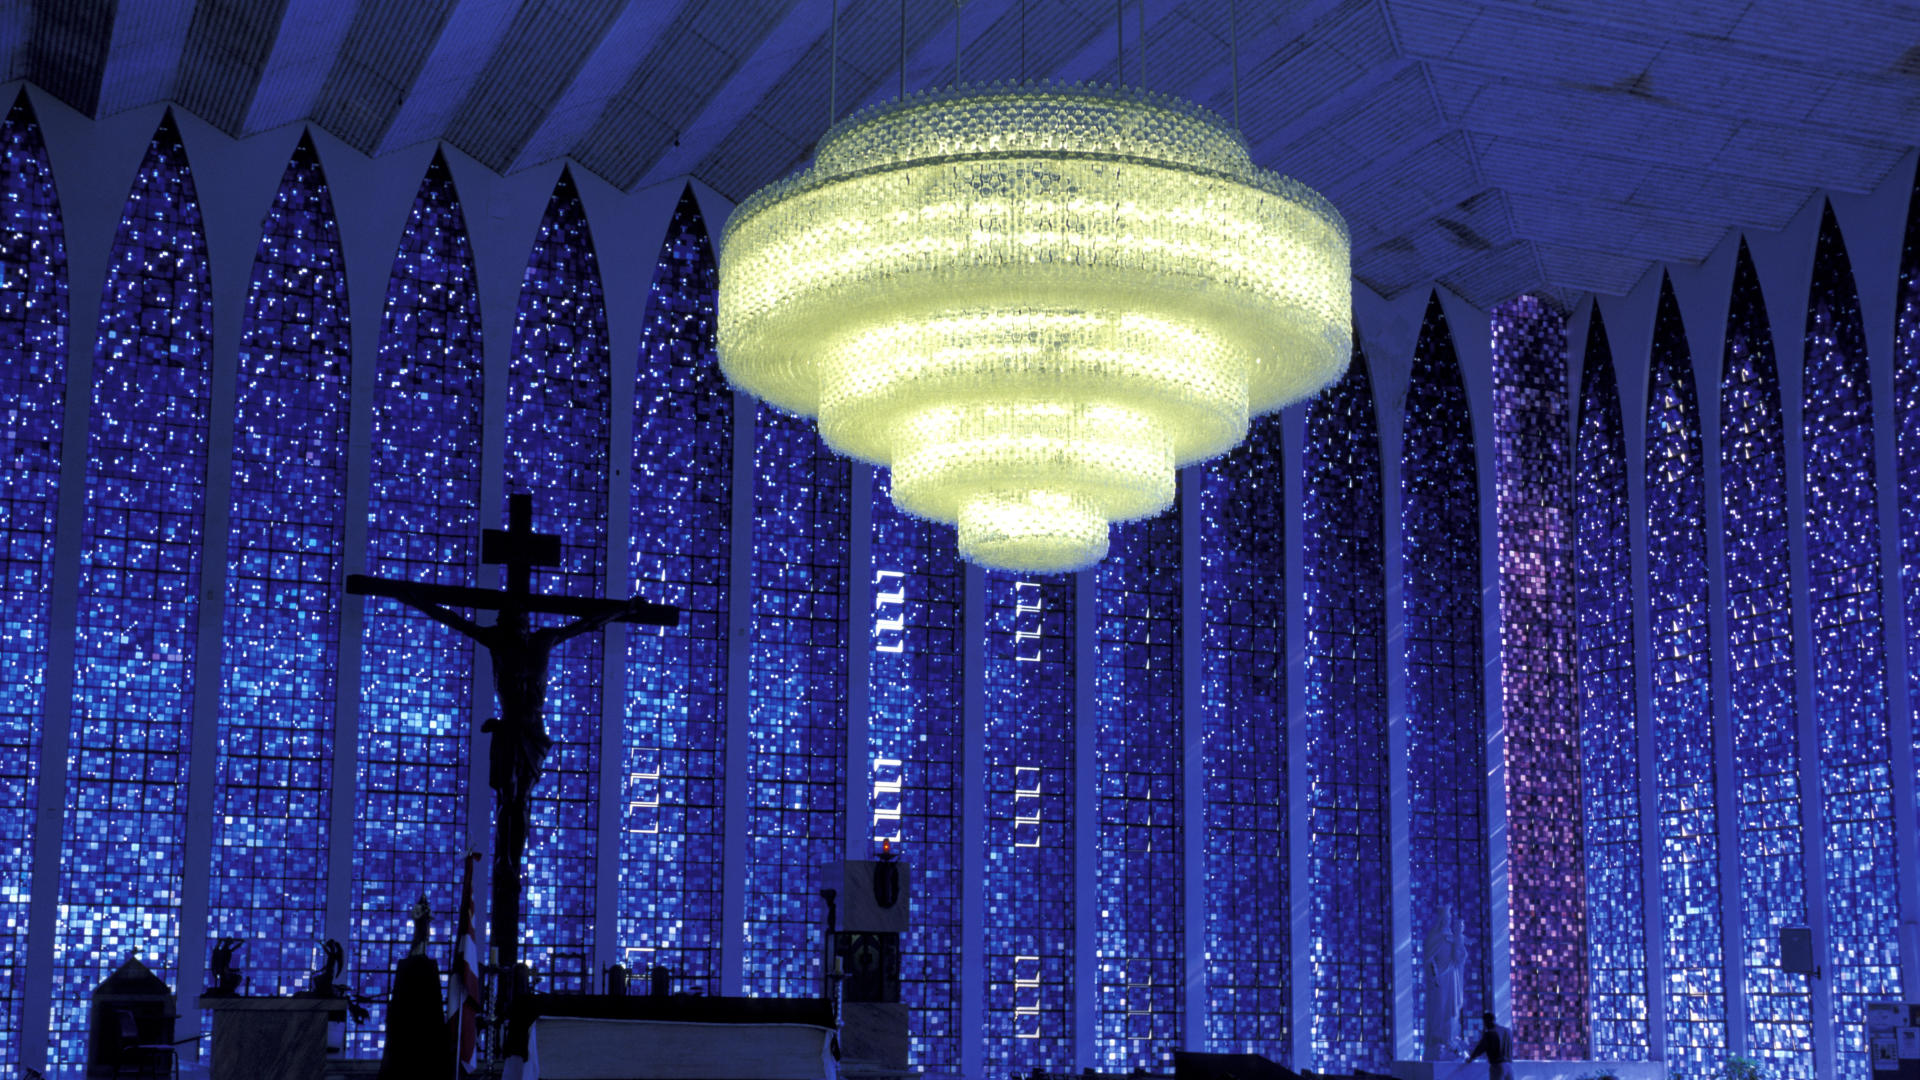 Blue-Church-Dom-Bosco-Church-Brasilia-Brazil-1920%C3%971080-wallpaper-wpc9003029